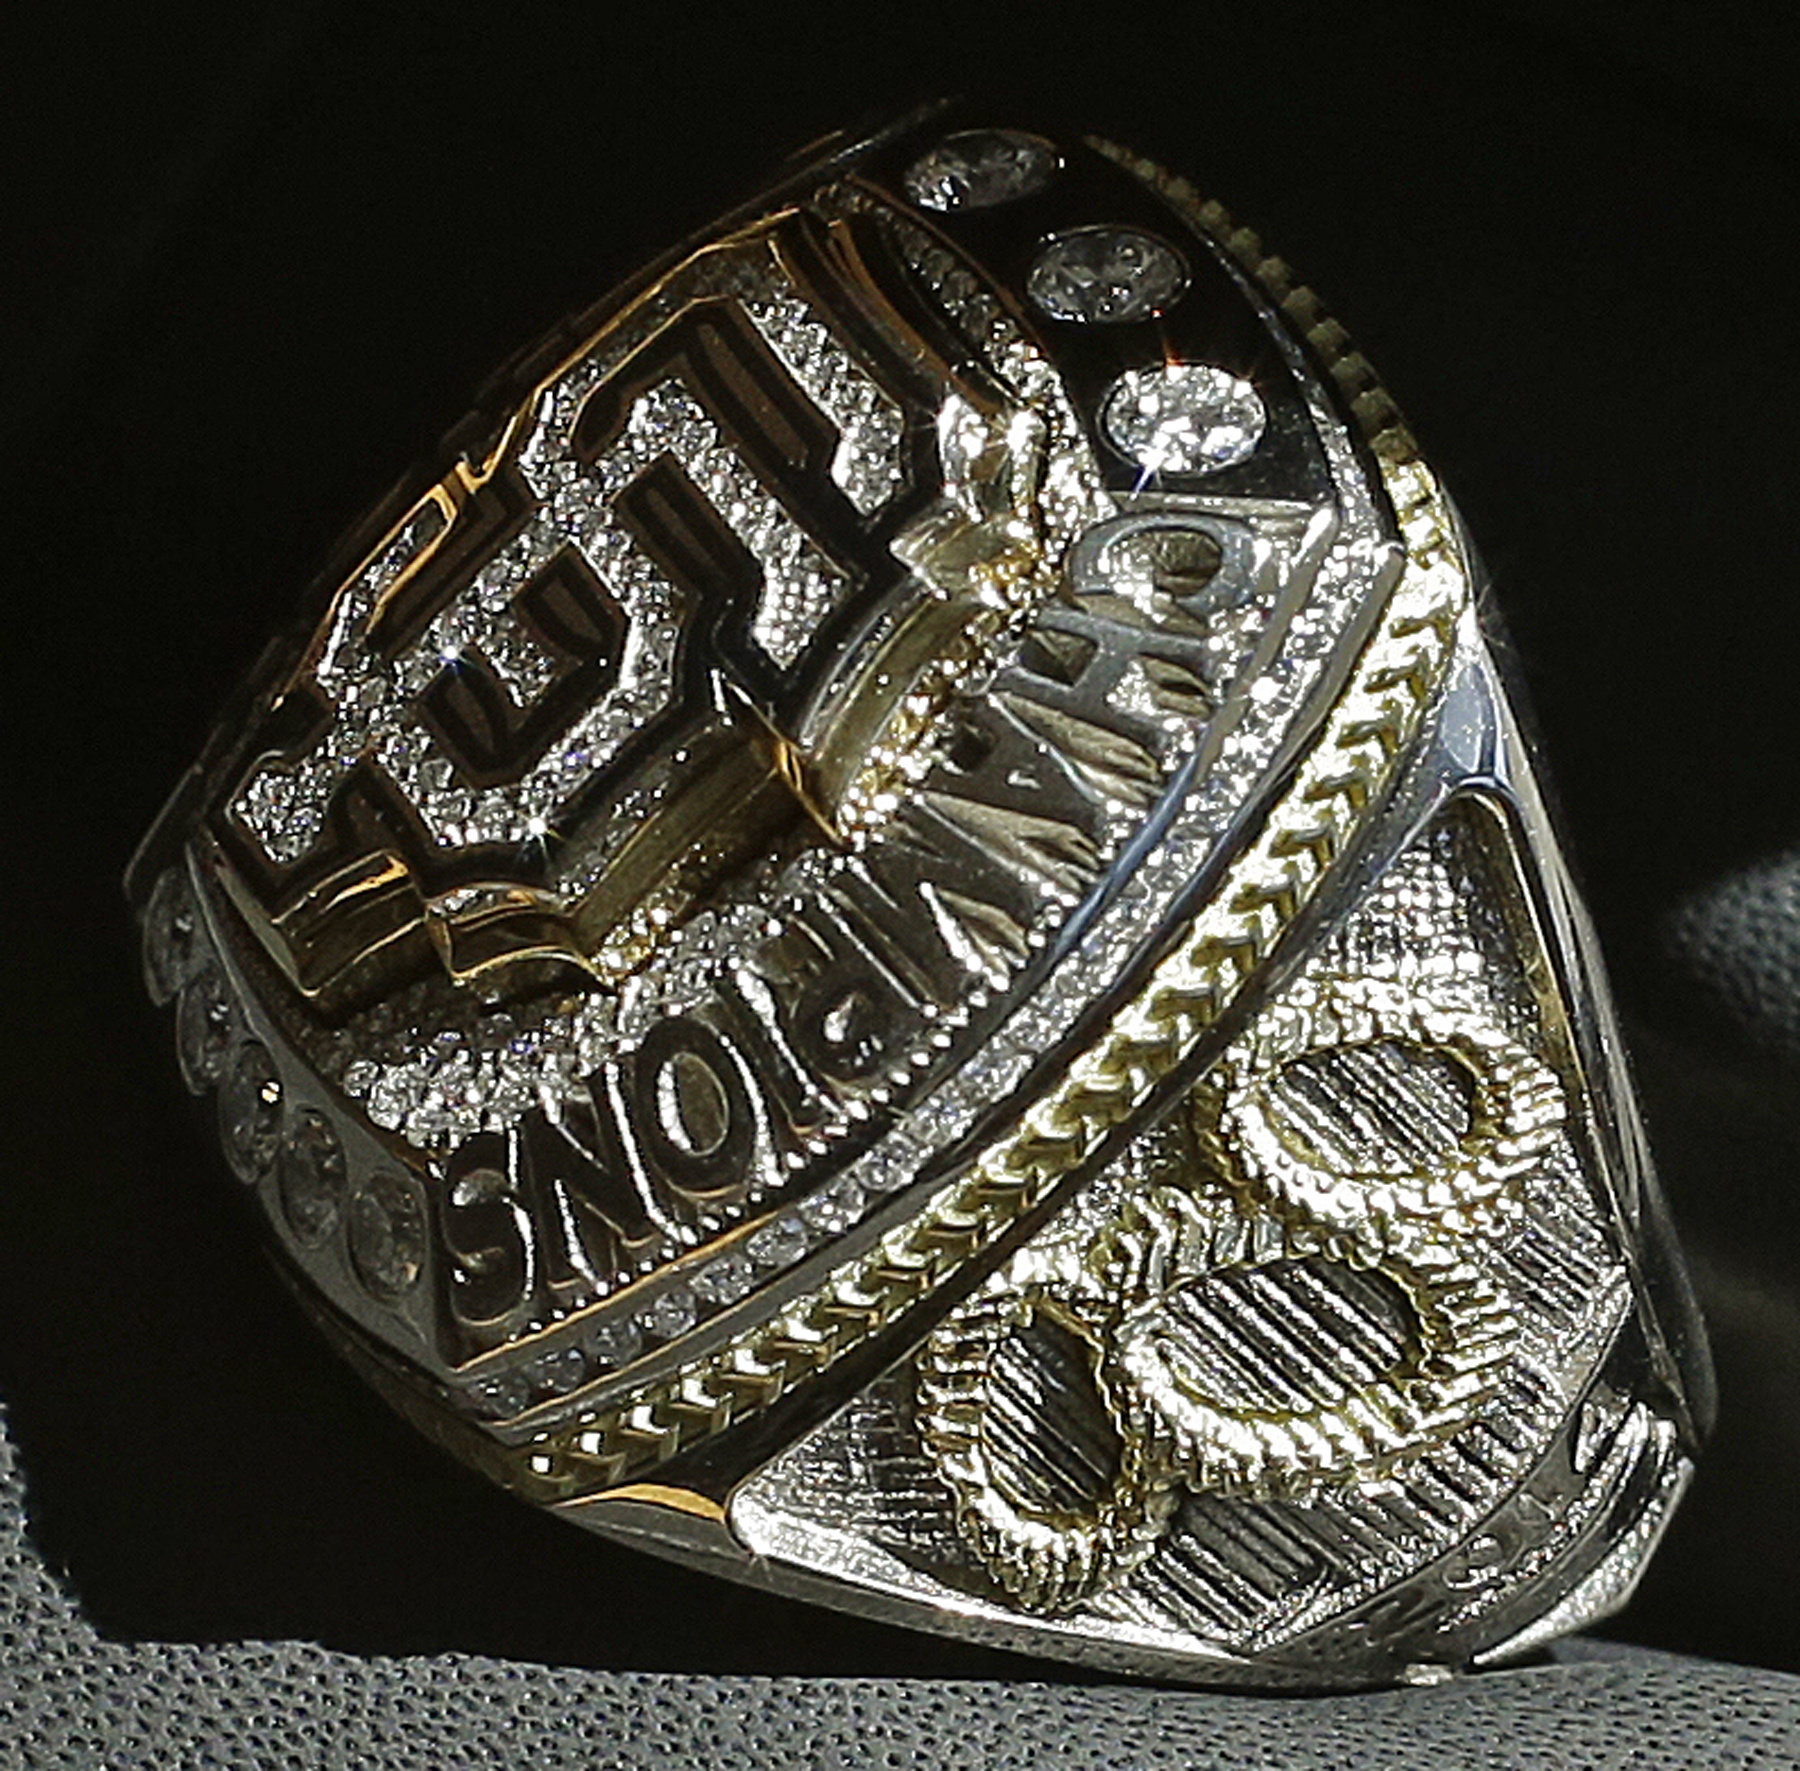 <div class='meta'><div class='origin-logo' data-origin='AP'></div><span class='caption-text' data-credit='AP Photo/Ben Margot'>The 2014 World Series championship ring belonging to San Francisco Giants manager Bruce Bochy is seen prior to the Giants' baseball game against the Arizona Diamondbacks.</span></div>